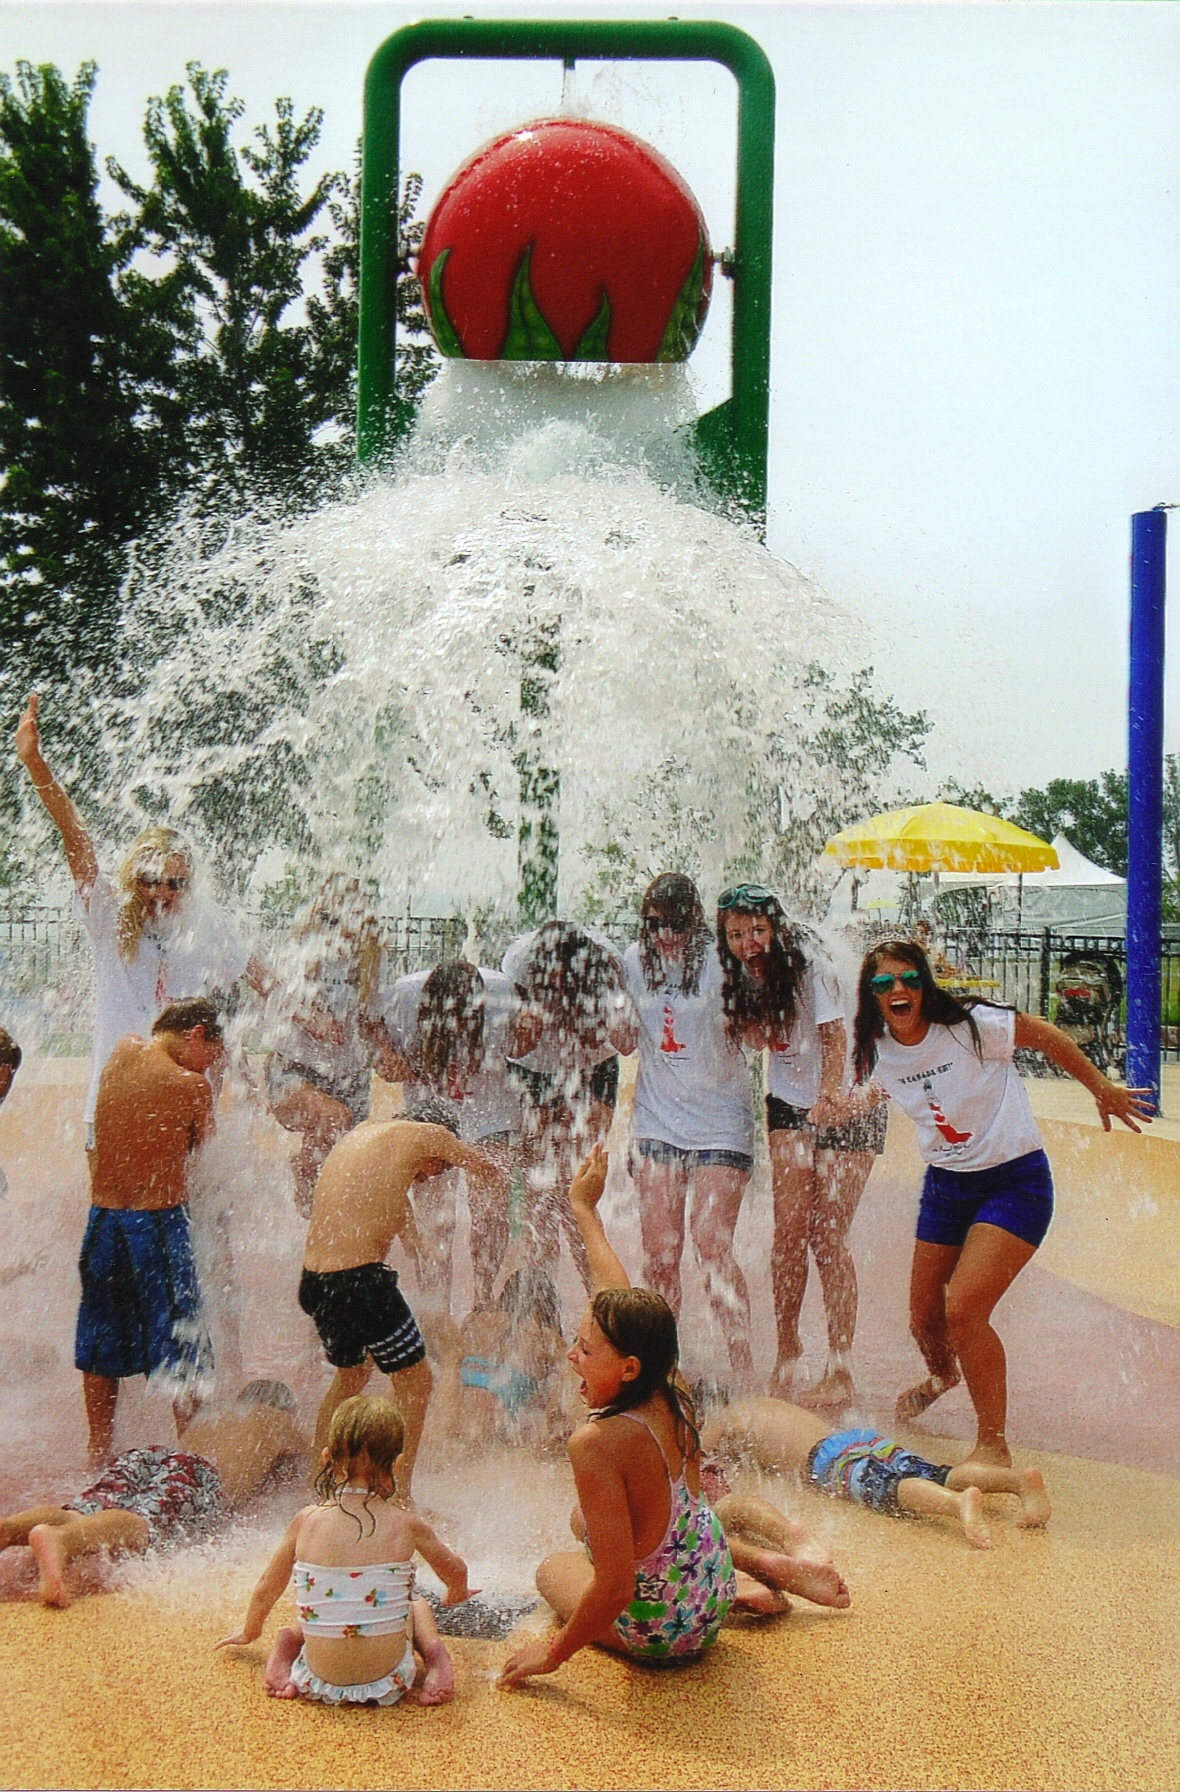 Tomato at Splash Pad.jpg